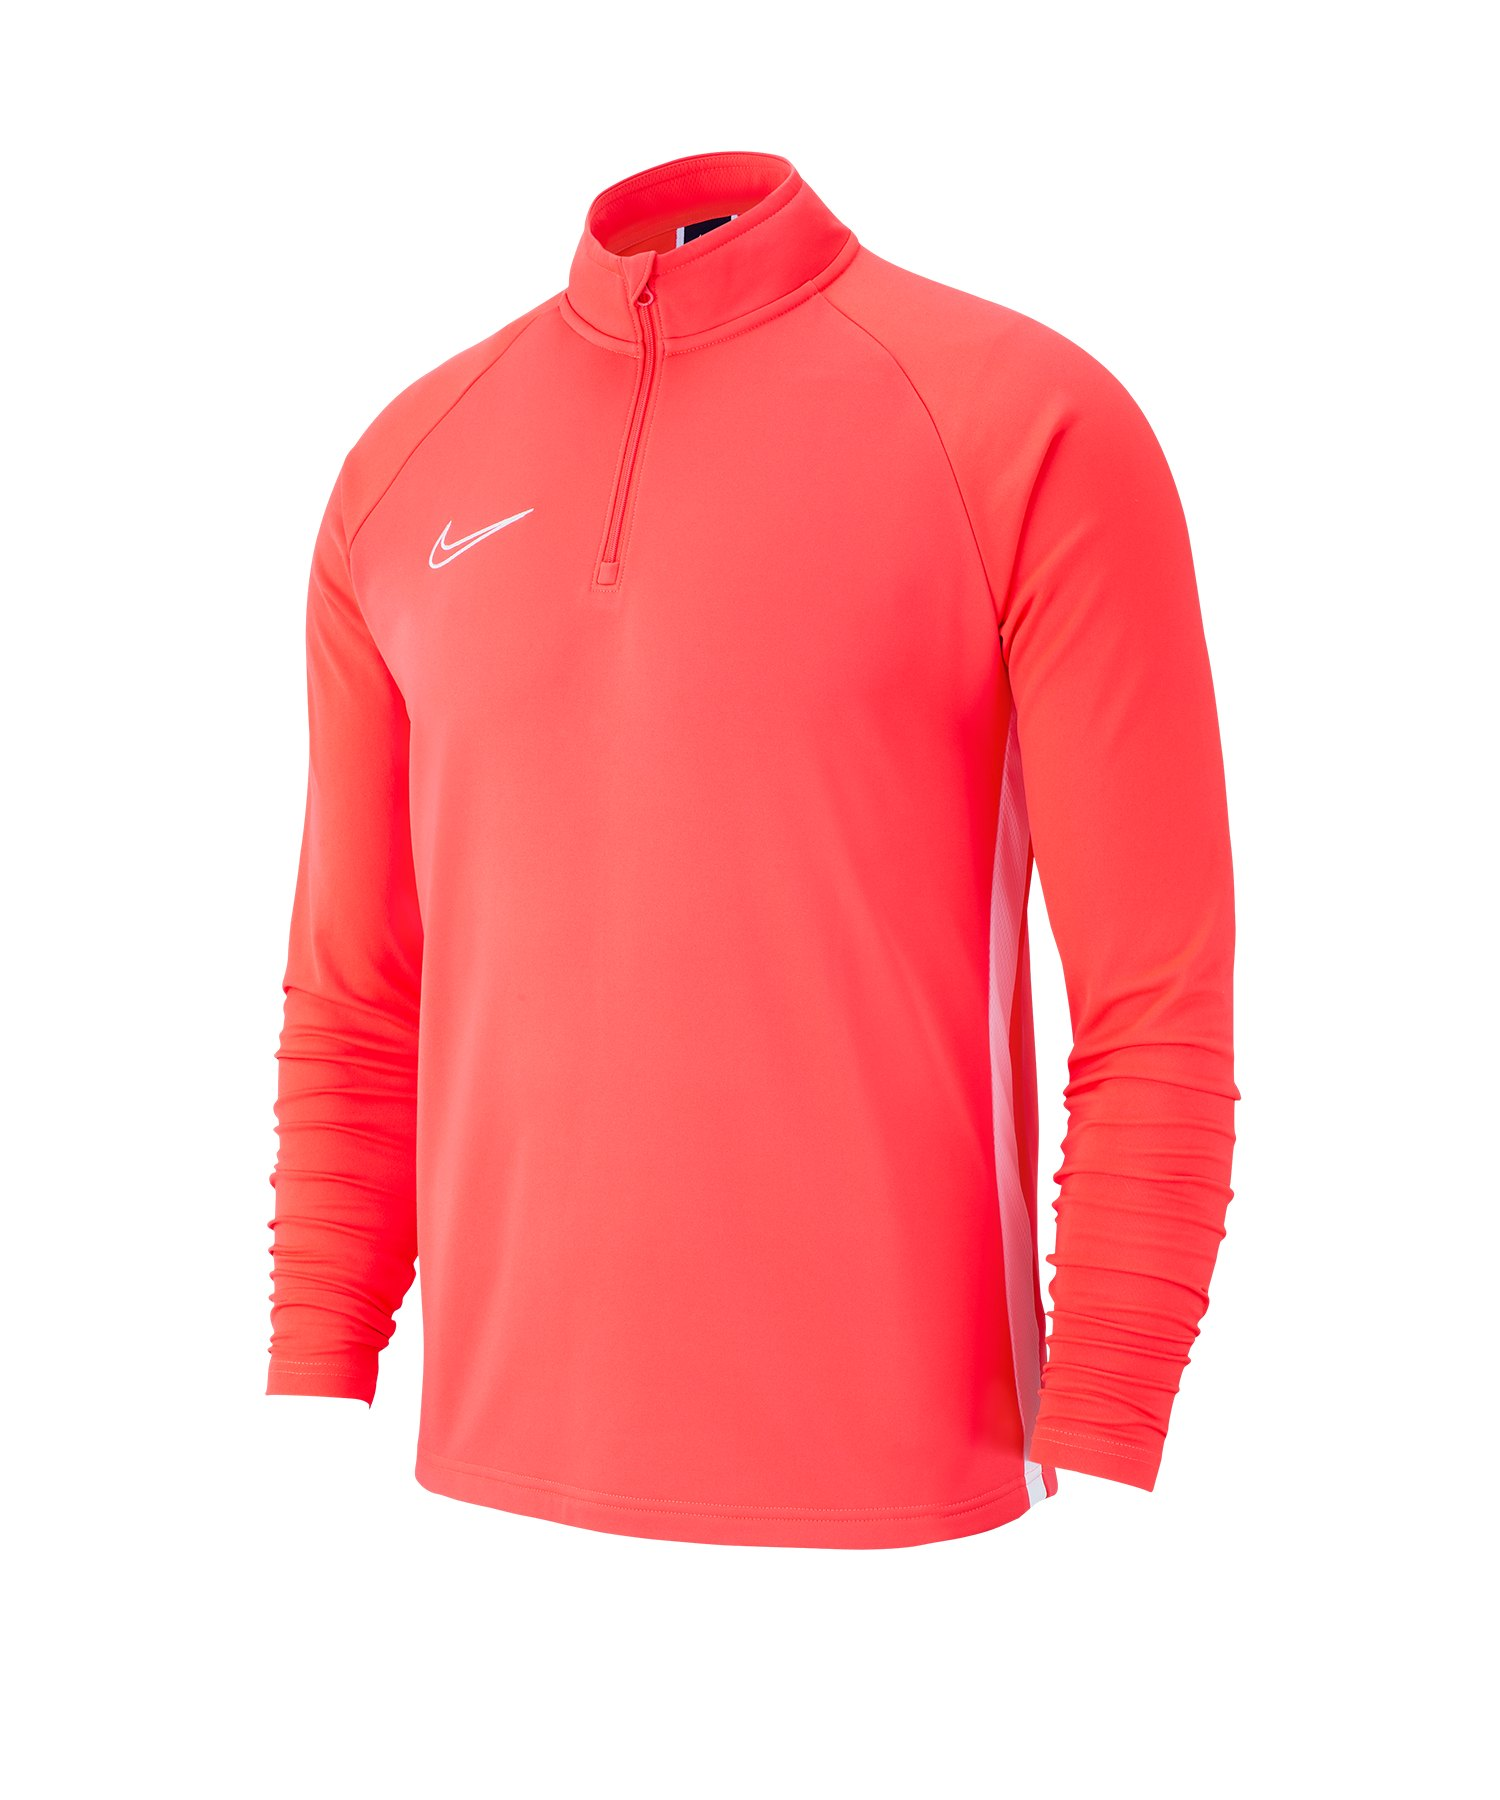 Nike Academy 19 1/4 Zip Drill Top Rot F671 - rot